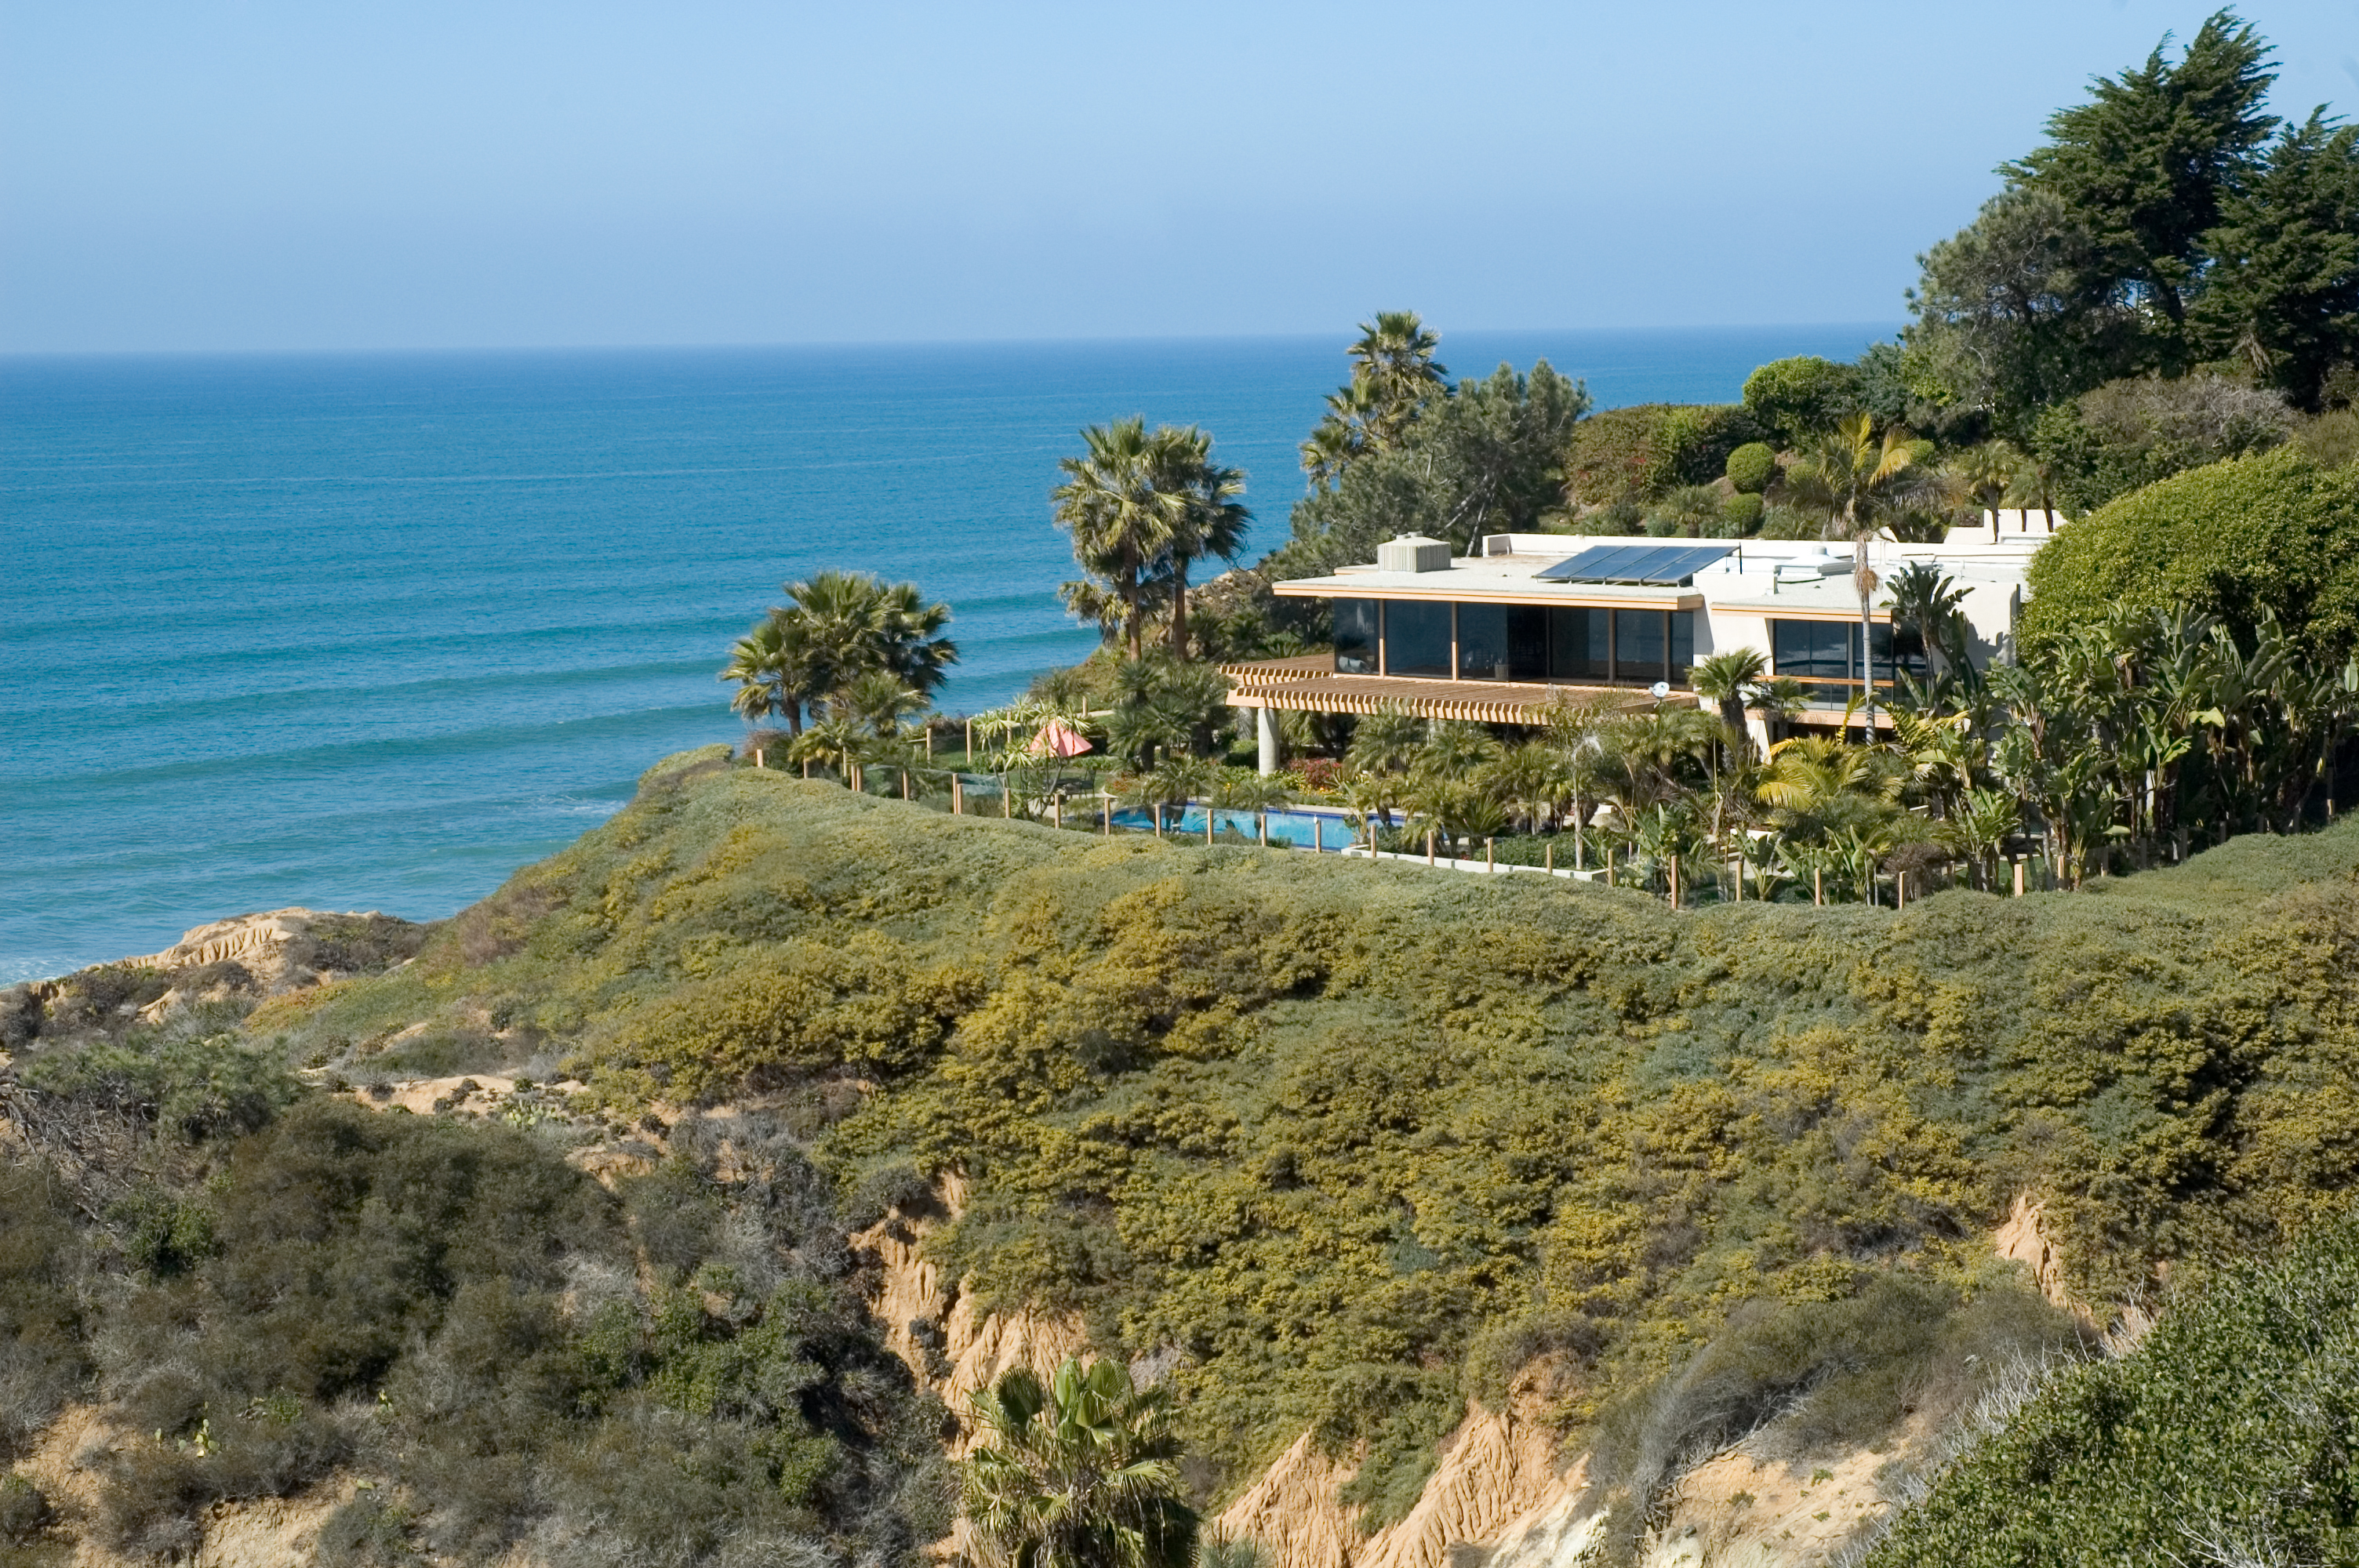 Beach house on top of cliff with sea in background